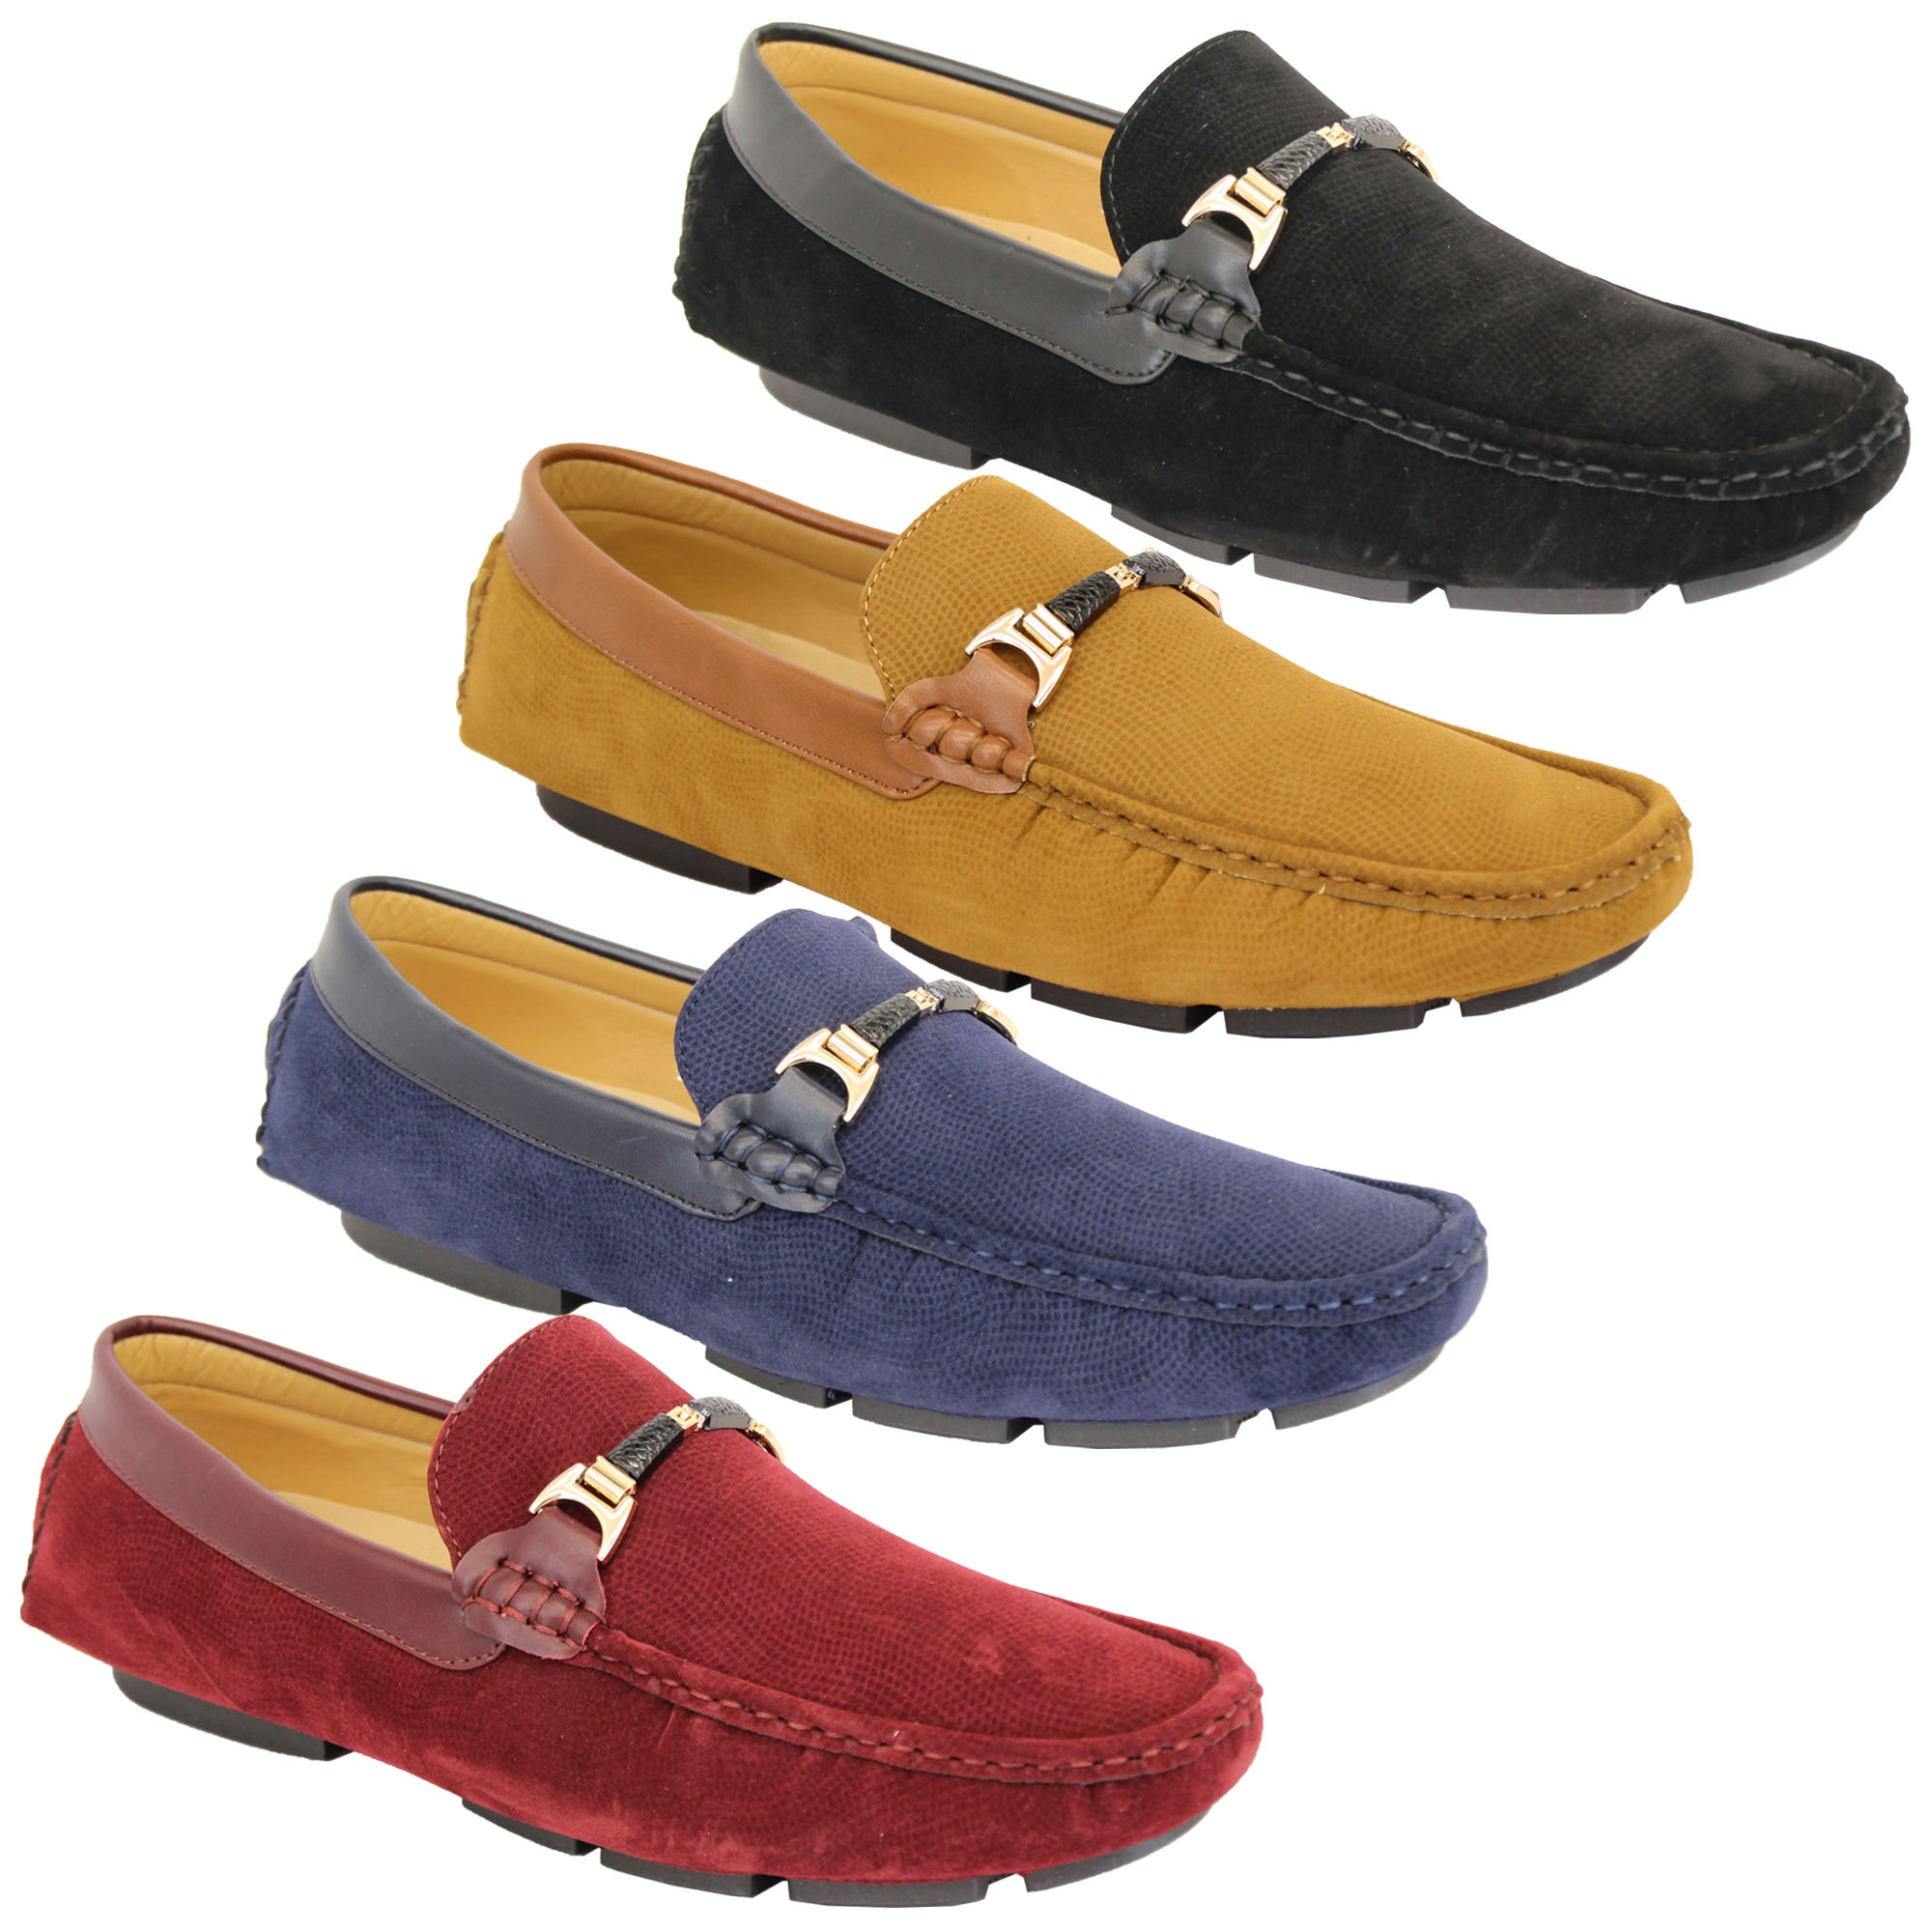 5ad953fd791 Mens Moccasins Suede Look Shoes Driving Loafers Slip On Boat Ribbon ...